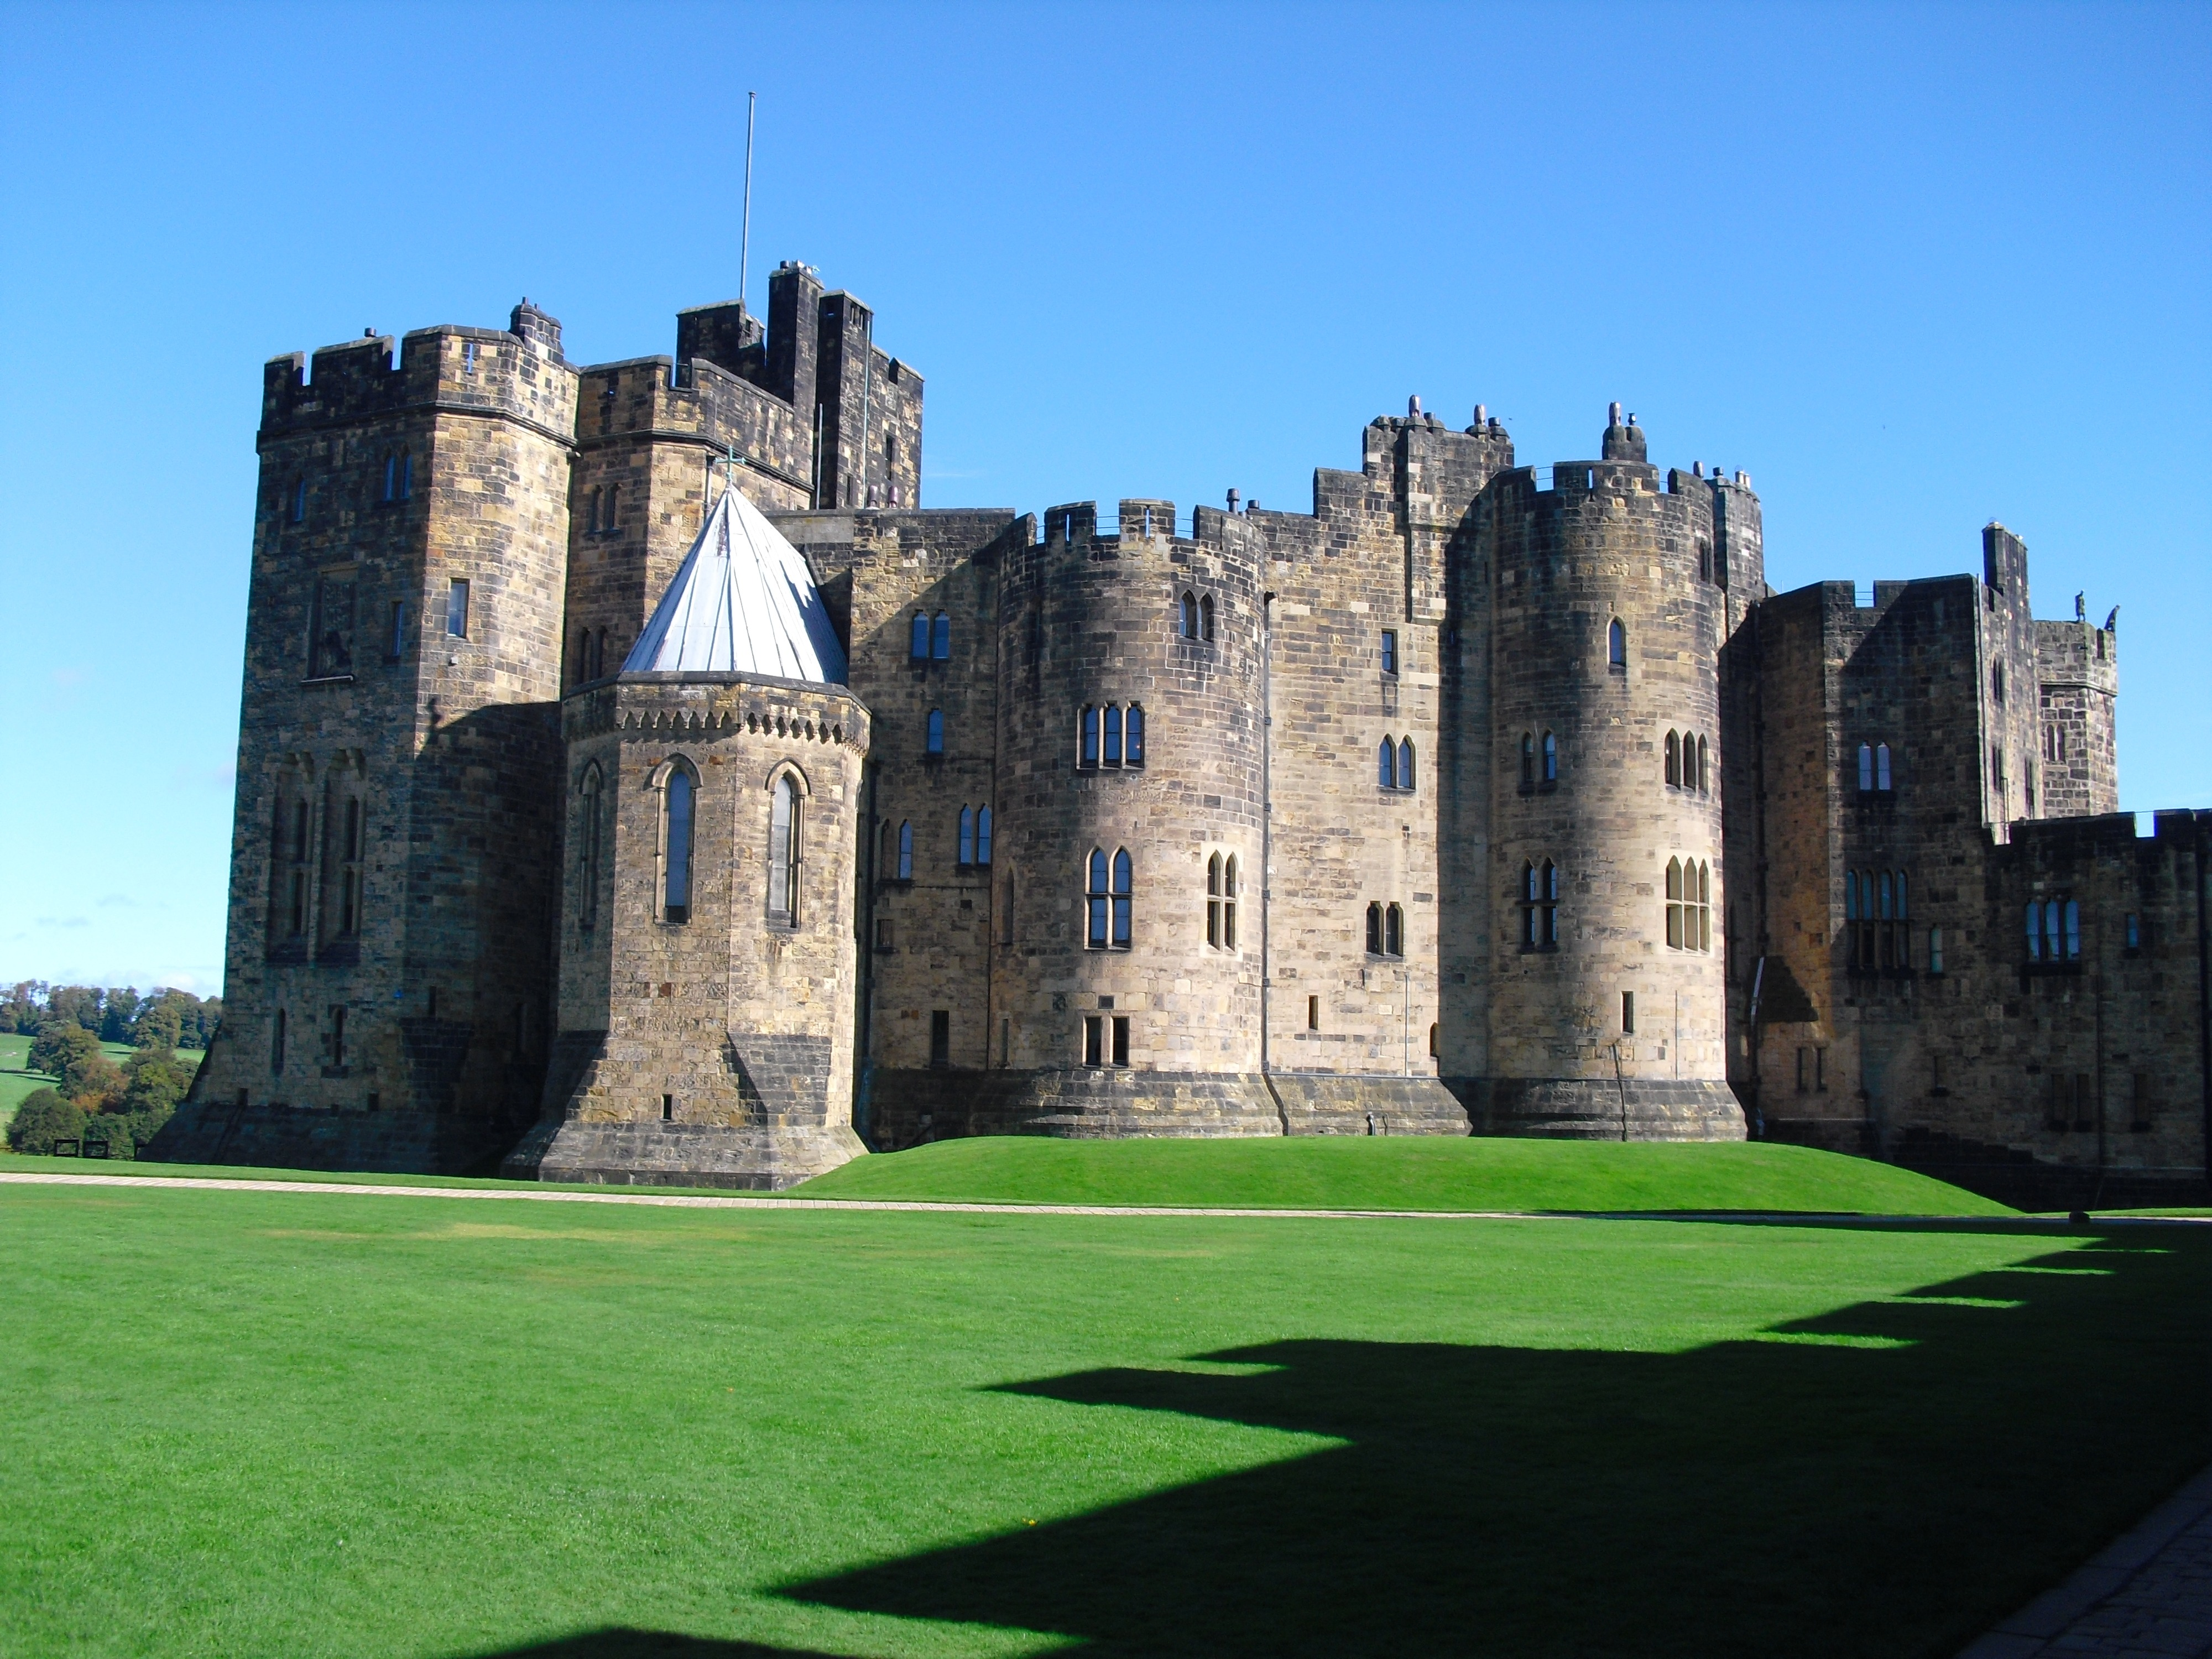 Best Wallpapers For Iphone X 4k Free Stock Photo Of Alnwick Castle Architecture Castle